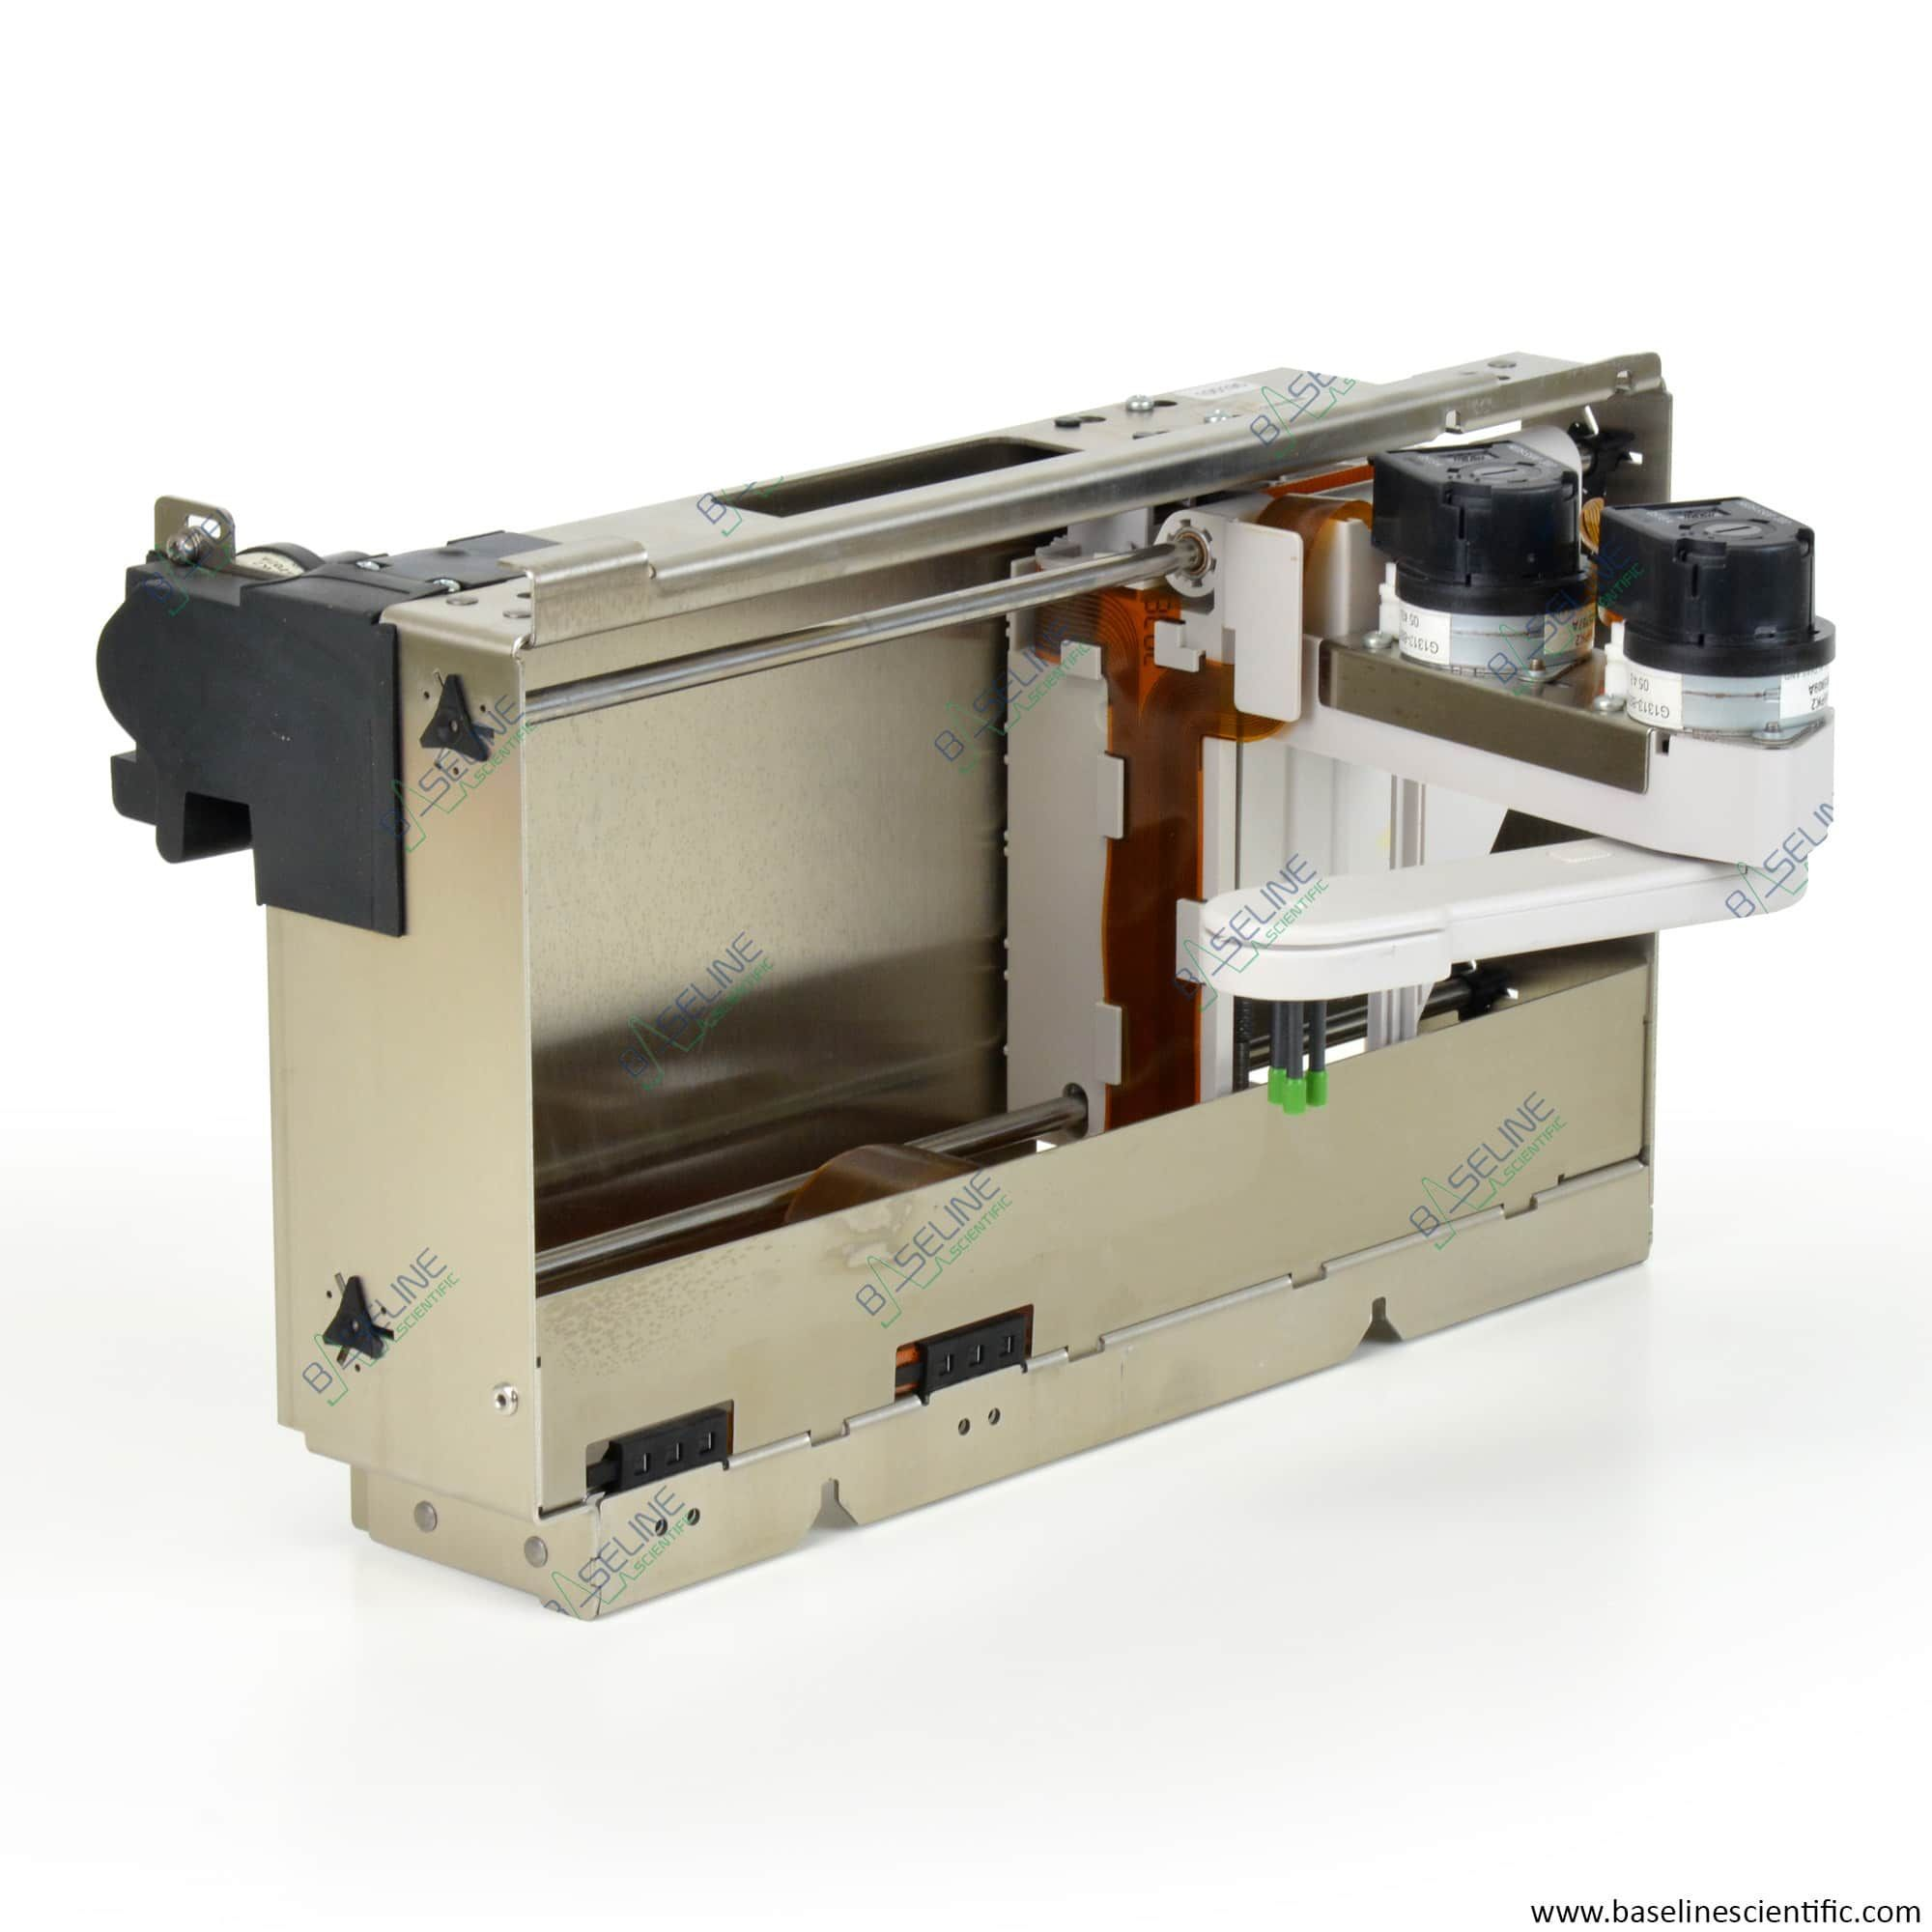 Refurbished Agilent HP 1100 1200 G1329-60009 Transport Assembly with 30-DAY WARRANTY